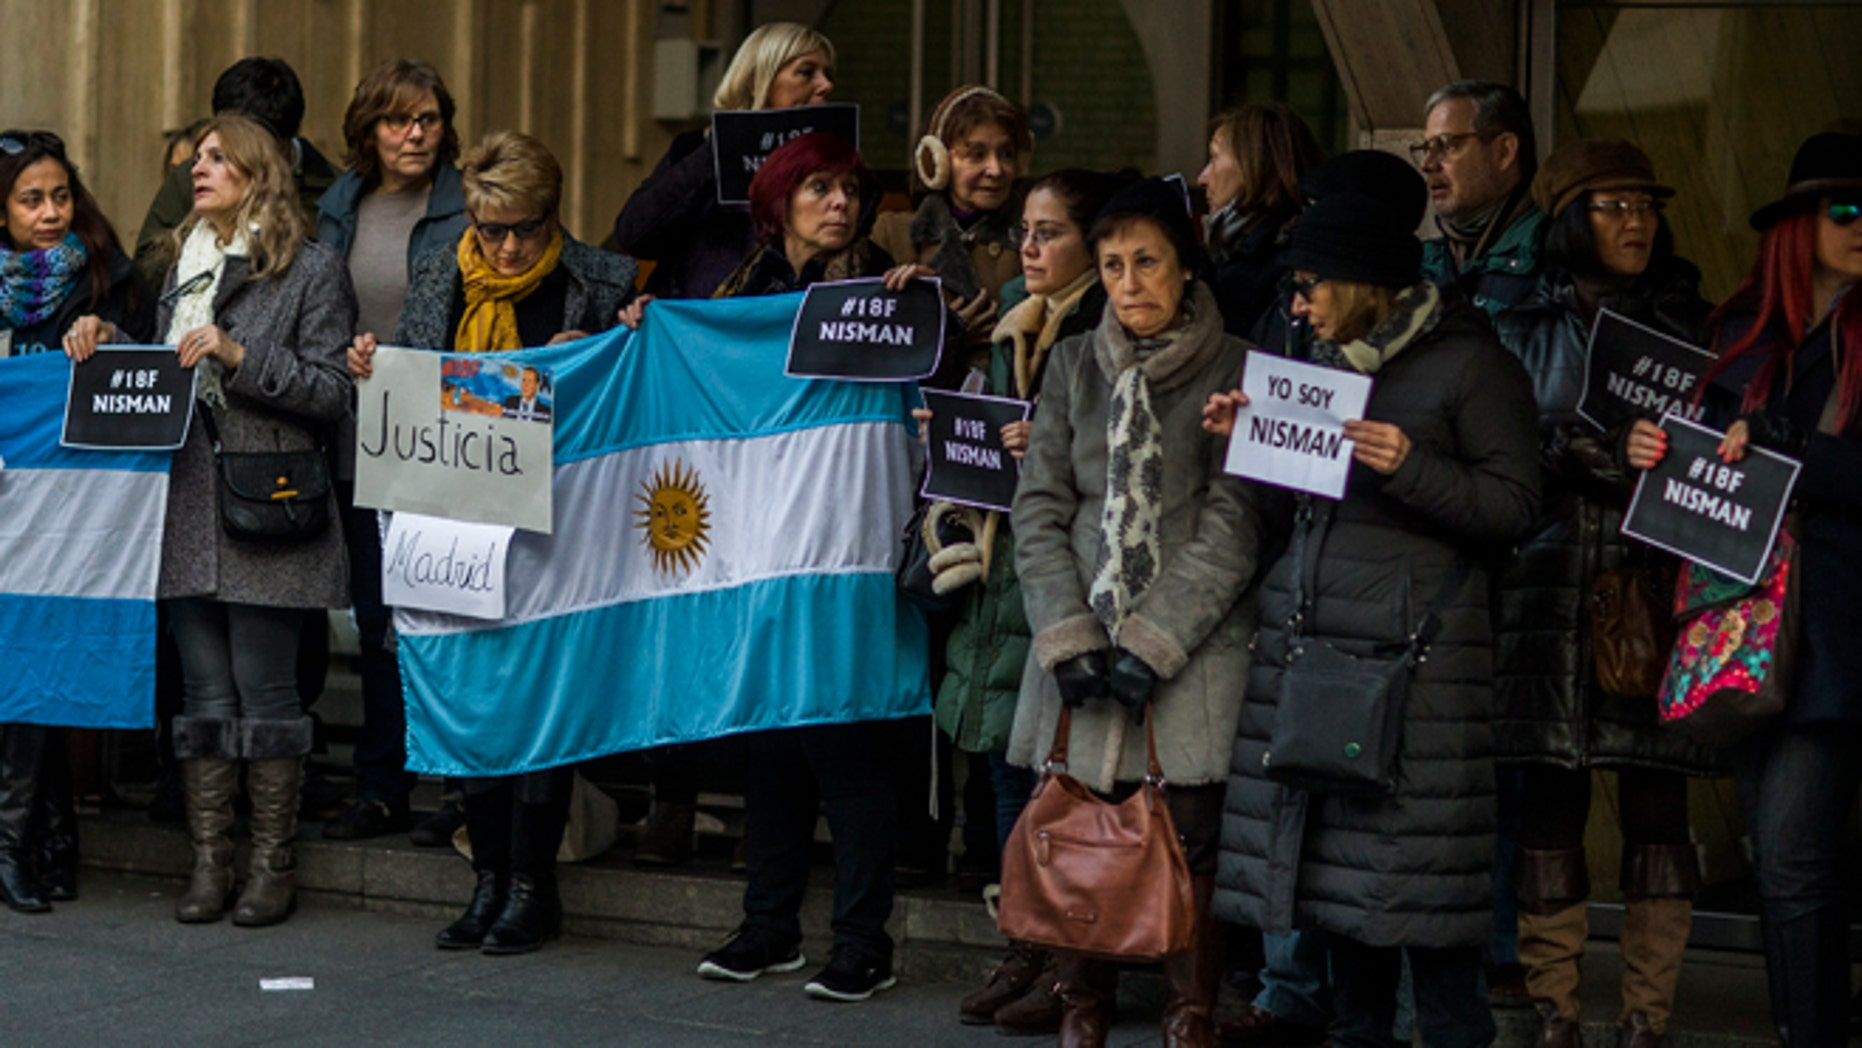 "People hold signs reading in Spanish ""Justice"" and ""I am Nisman"" as they gather for justice and against impunity in the case of the mysterious death of late prosecutor Alberto Nisman outside the Argentinean Embassy in Madrid, Spain, Wednesday, Feb. 18, 2015. Nisman was scheduled to appear before Congress the day after he was found dead in his apartment on Jan. 18, to detail his allegations that President Cristina Fernandez had conspired to protect some of the Iranian suspects in the 1994 bombing of a Jewish center. (AP Photo/Andres Kudacki)"